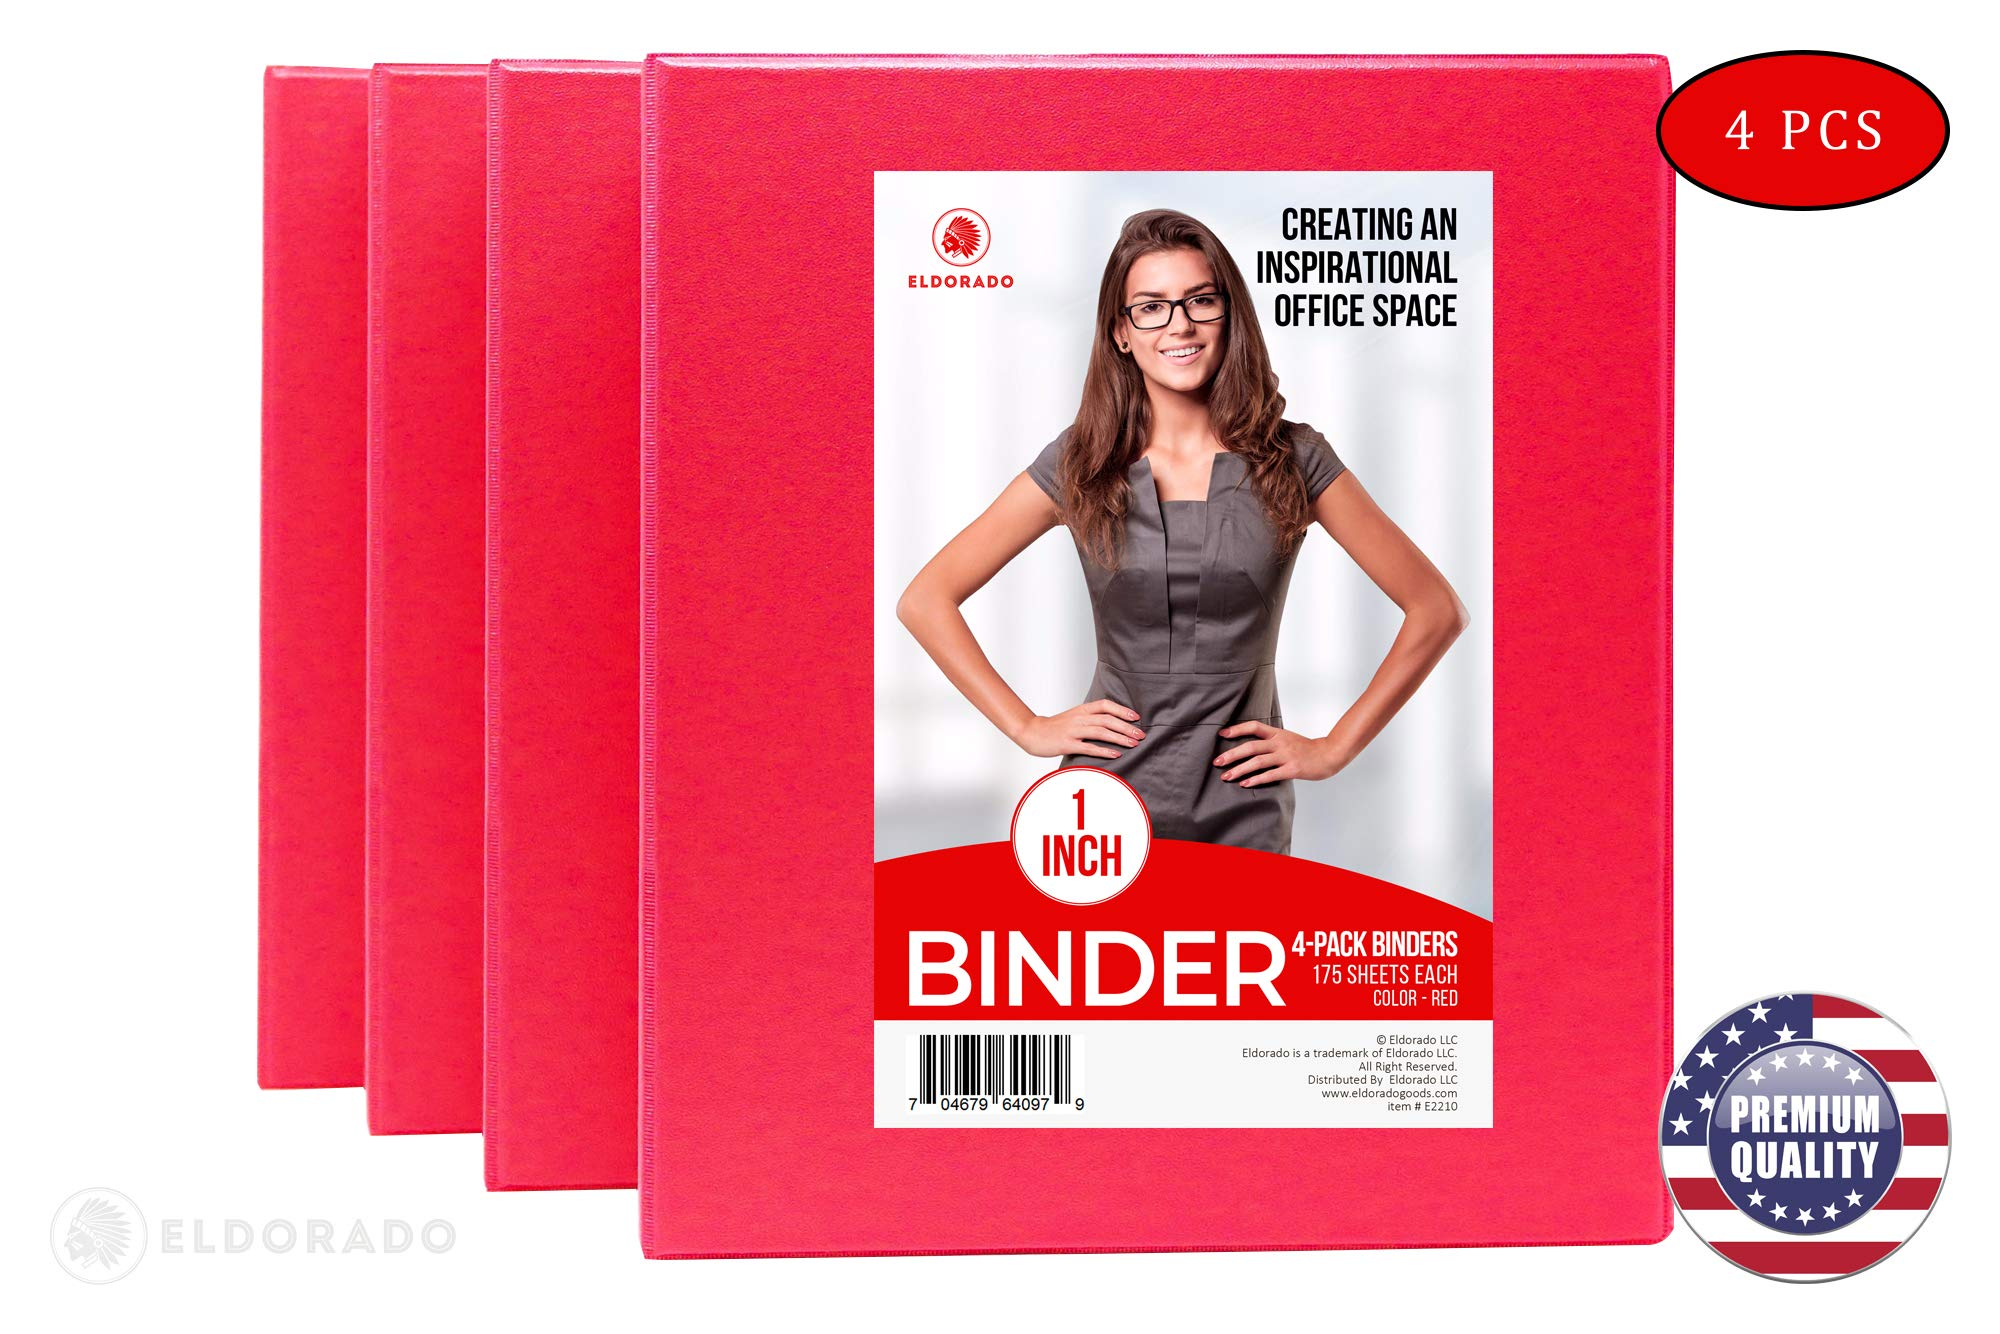 Eldorado Binder - 3 Rings 1 inch in Diameter, for Office, Home, College, Student, Work, Presentation, Project, and Report Use (Red) by Eldorado Goods (Image #2)